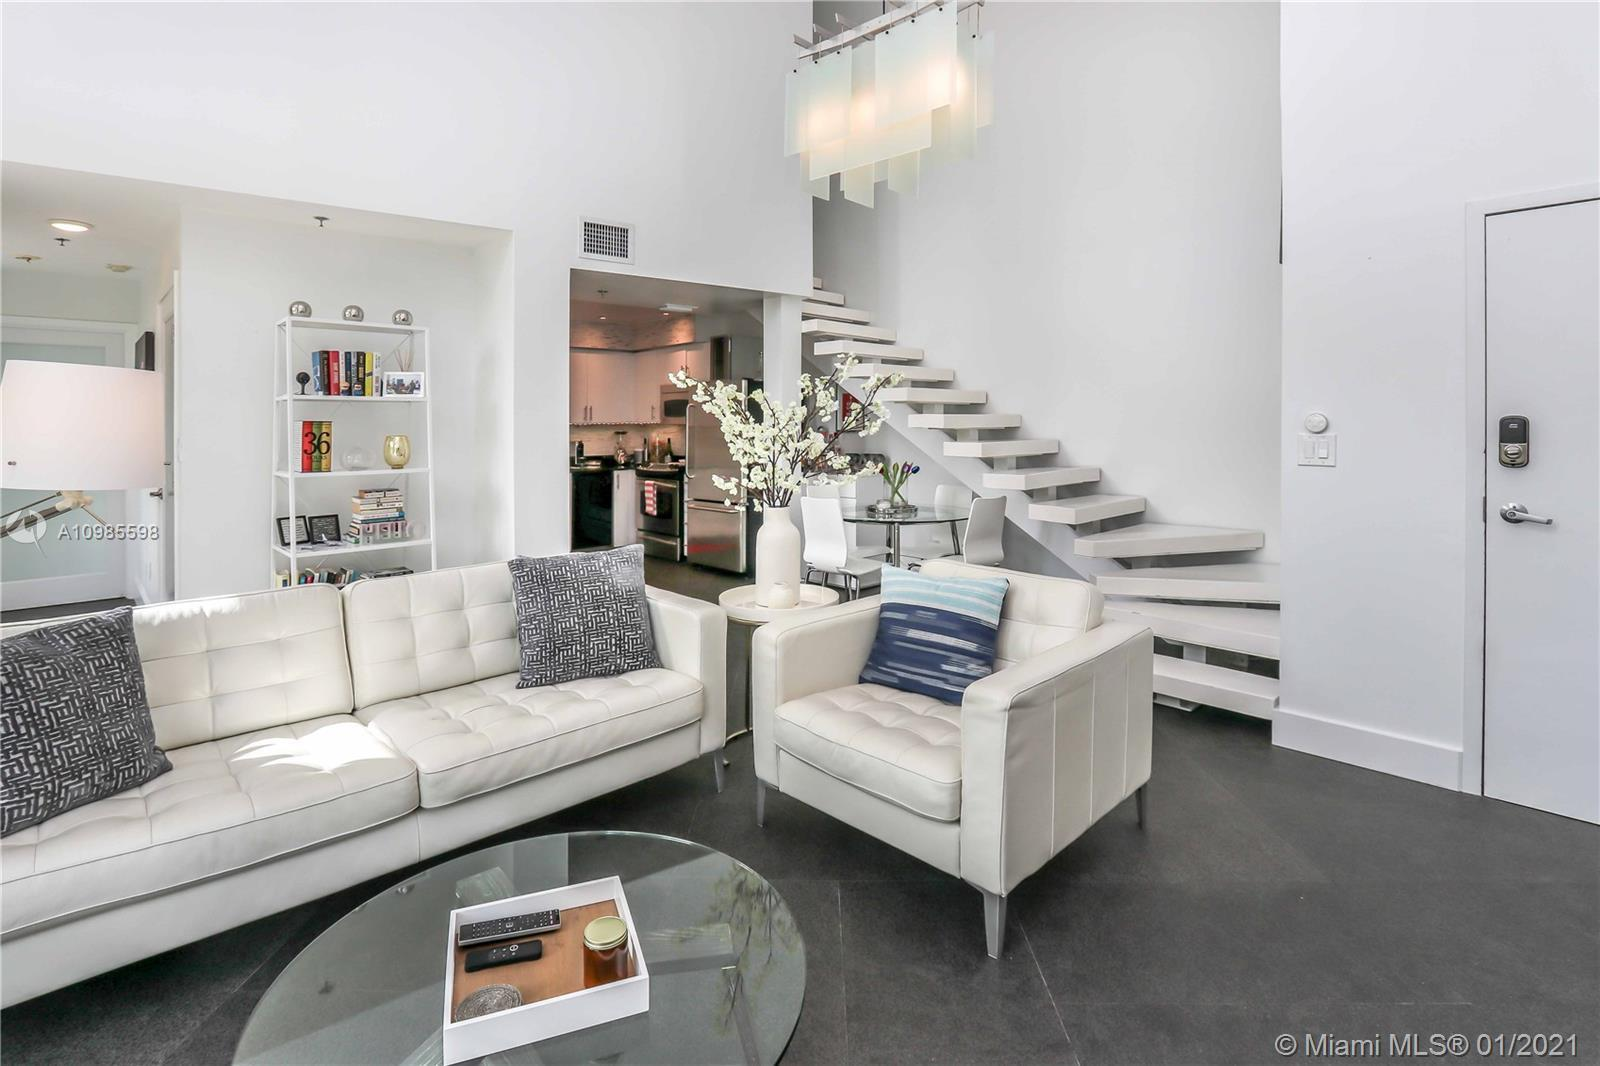 Private two story loft-condo in the heart of South Beach. This unit features double height ceilings,